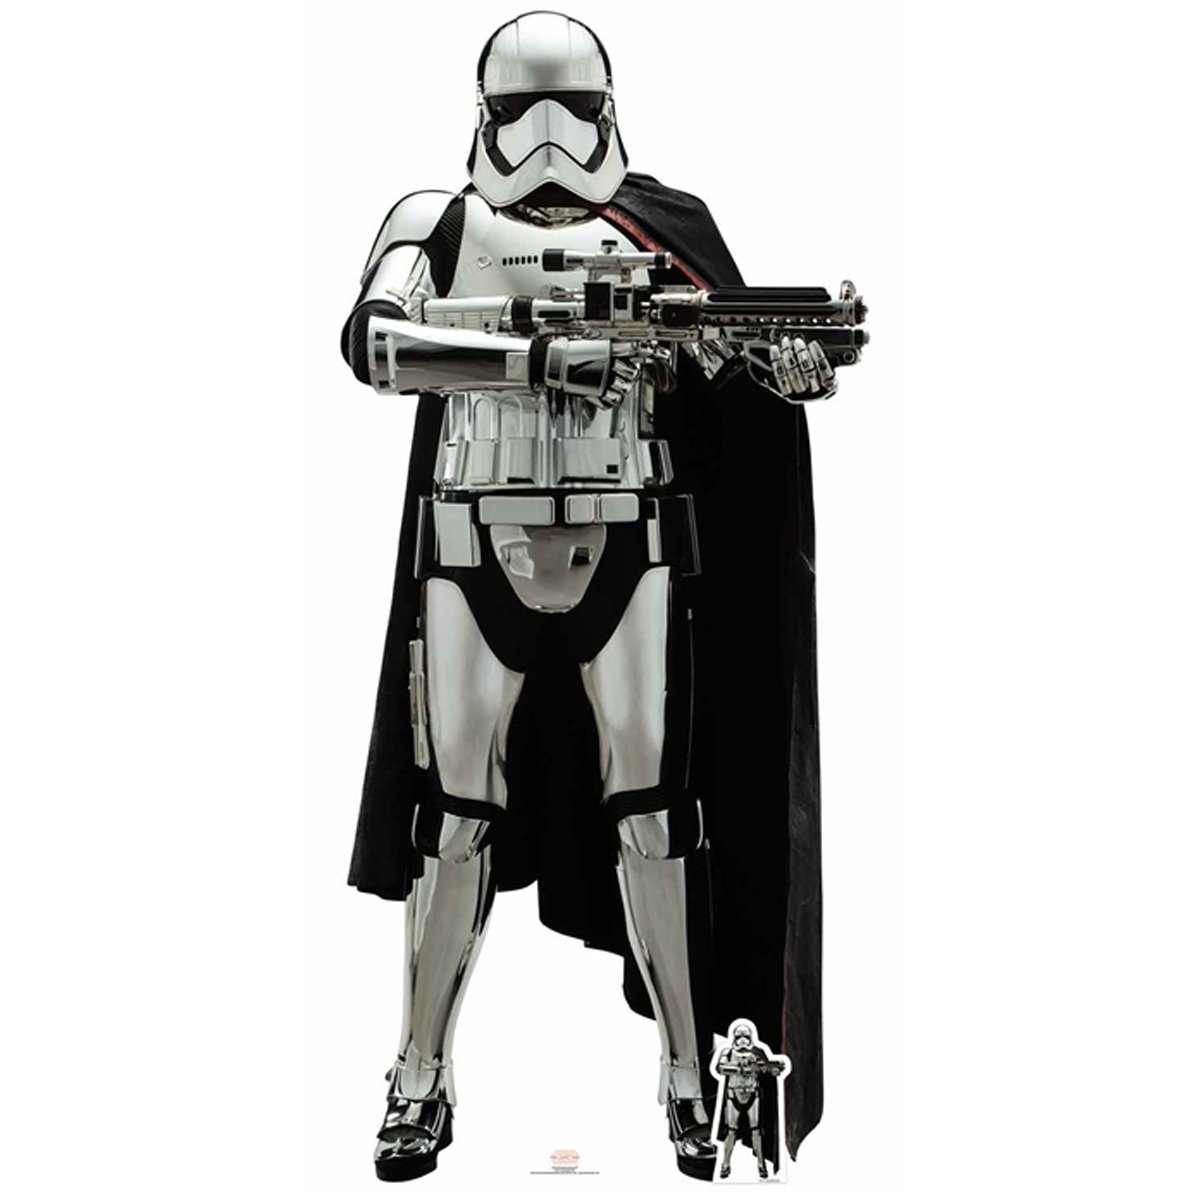 Official Star Cutouts Star Wars Captain Phasma (The Last Jedi) Lifesize Cardboard Cut Out SC1078